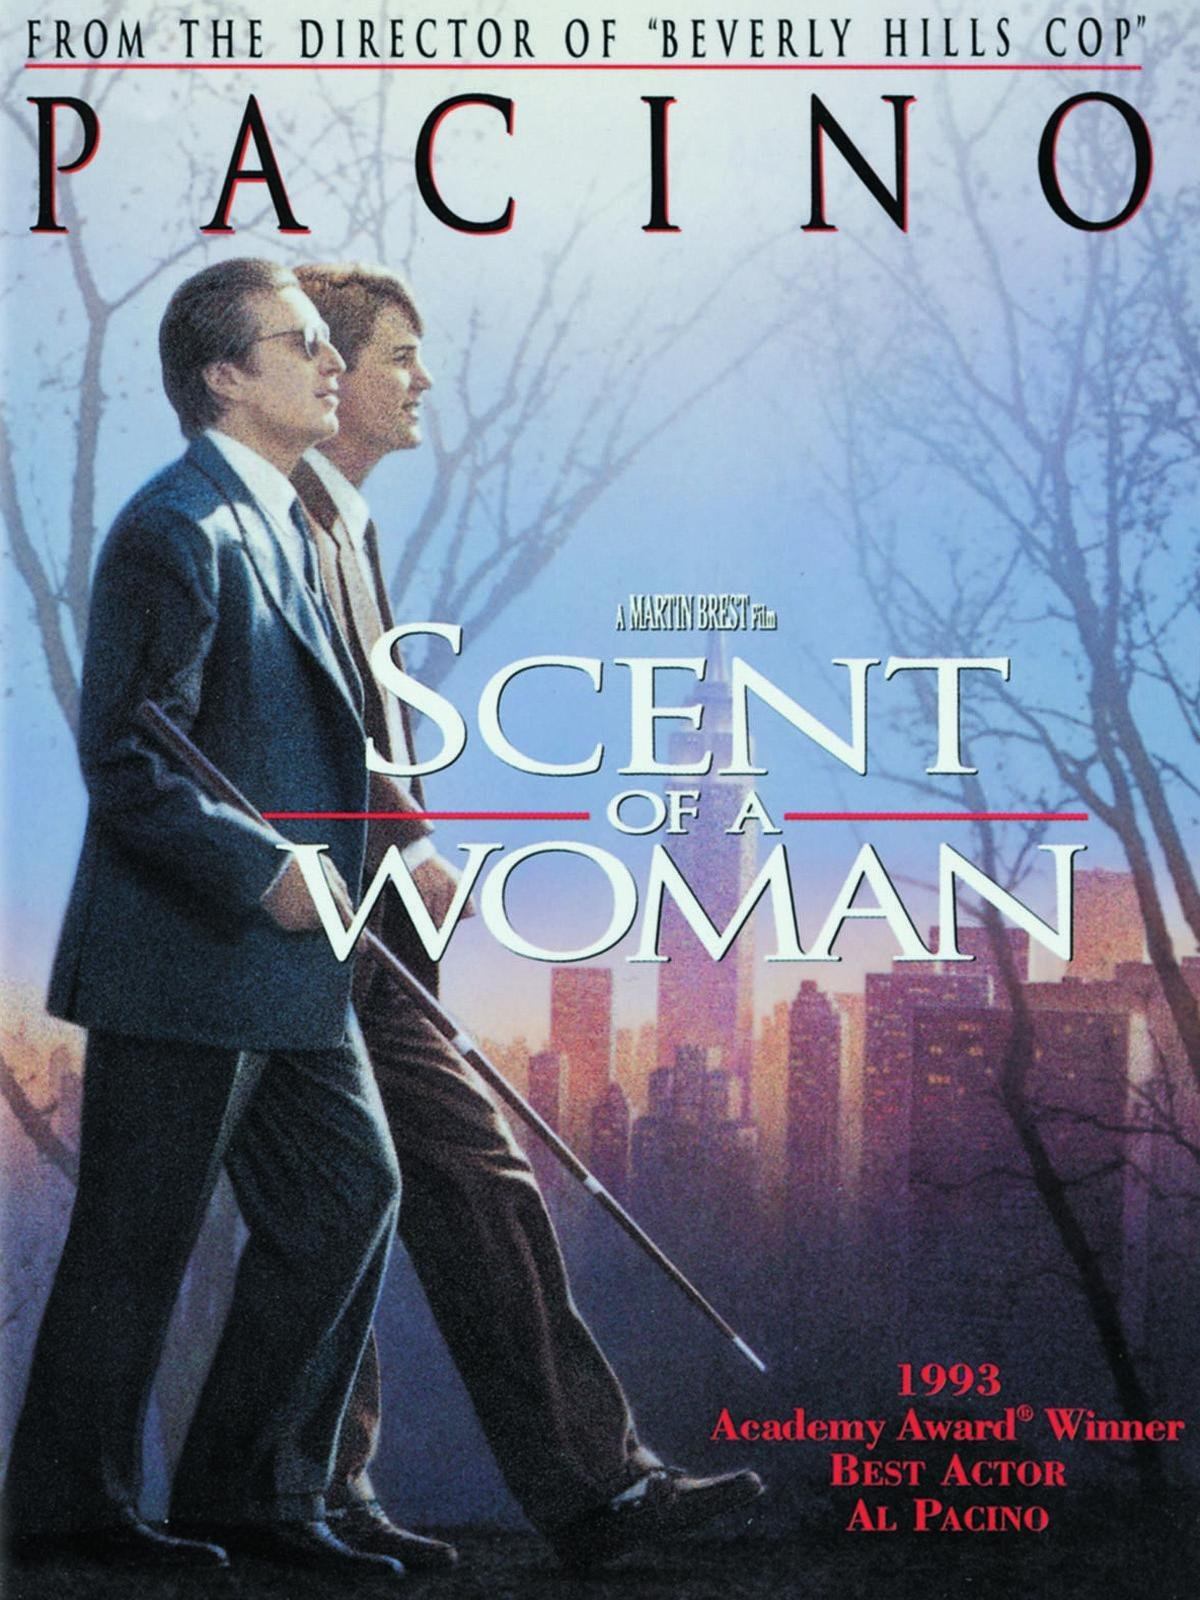 Watch Scent Of A Woman Prime Video